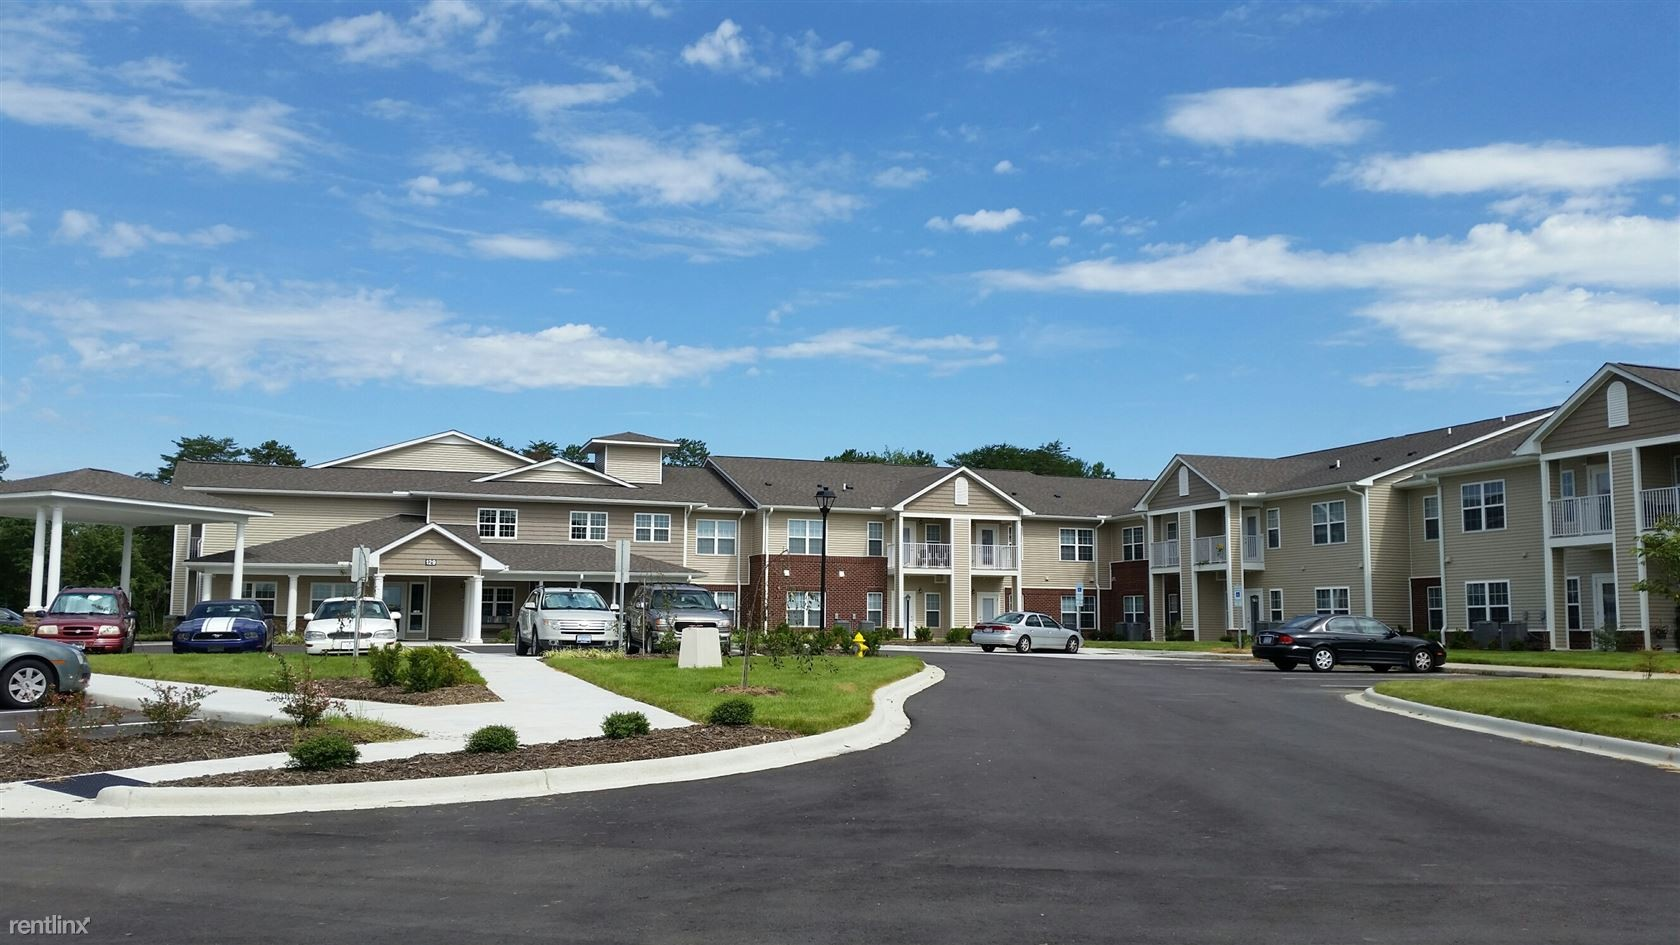 whistler's cove apartments    whistlers cove ct mount airy  -  photo of   whistlers cove ct mount airy